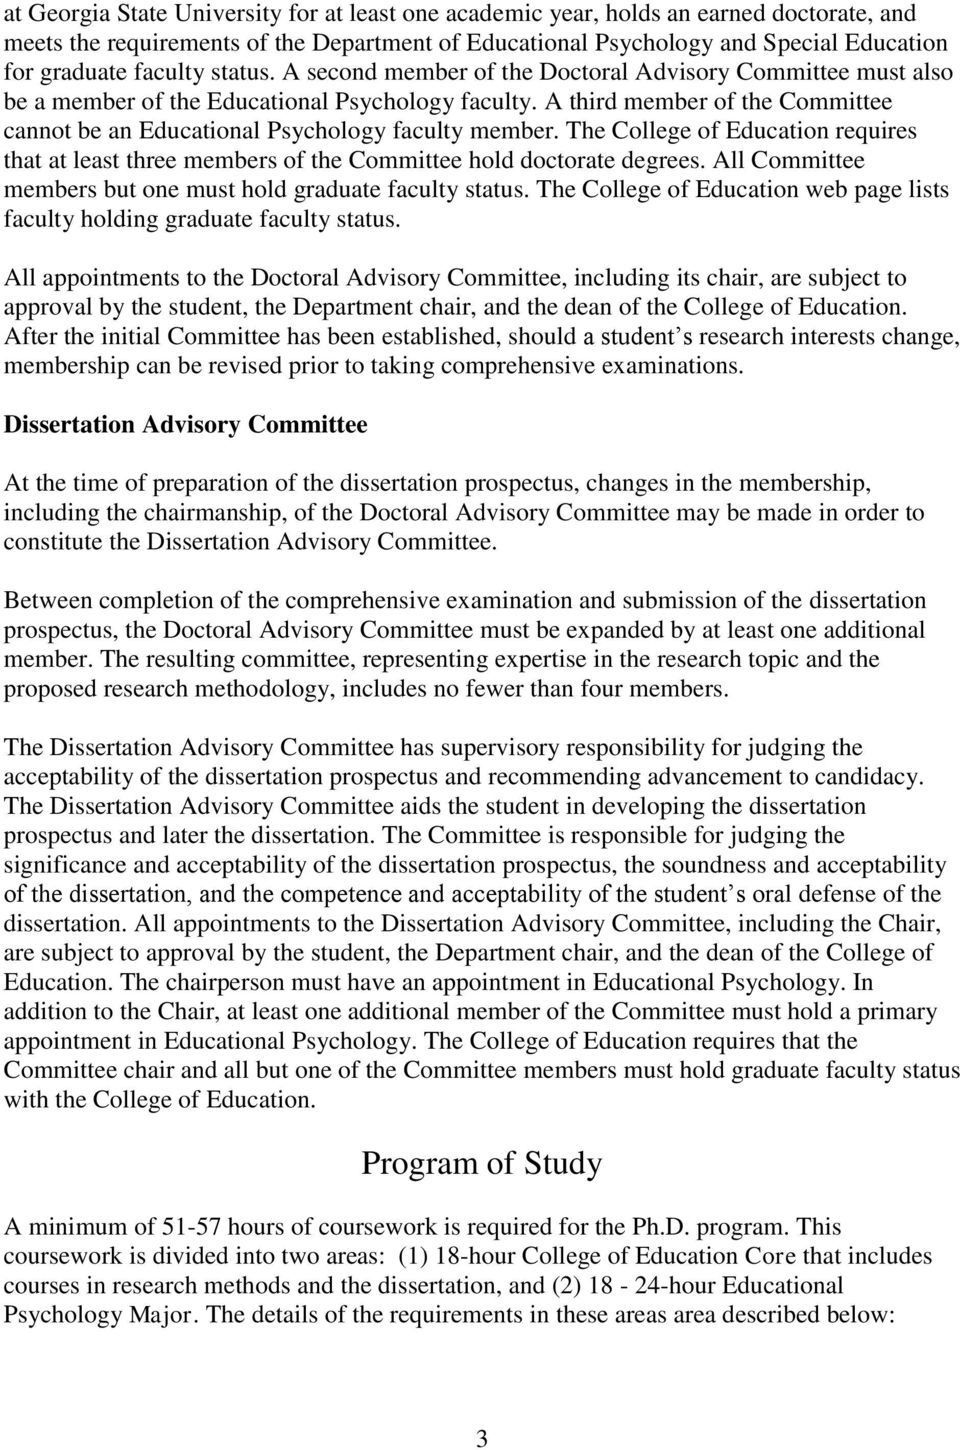 A third member of the Committee cannot be an Educational Psychology faculty member. The College of Education requires that at least three members of the Committee hold doctorate degrees.